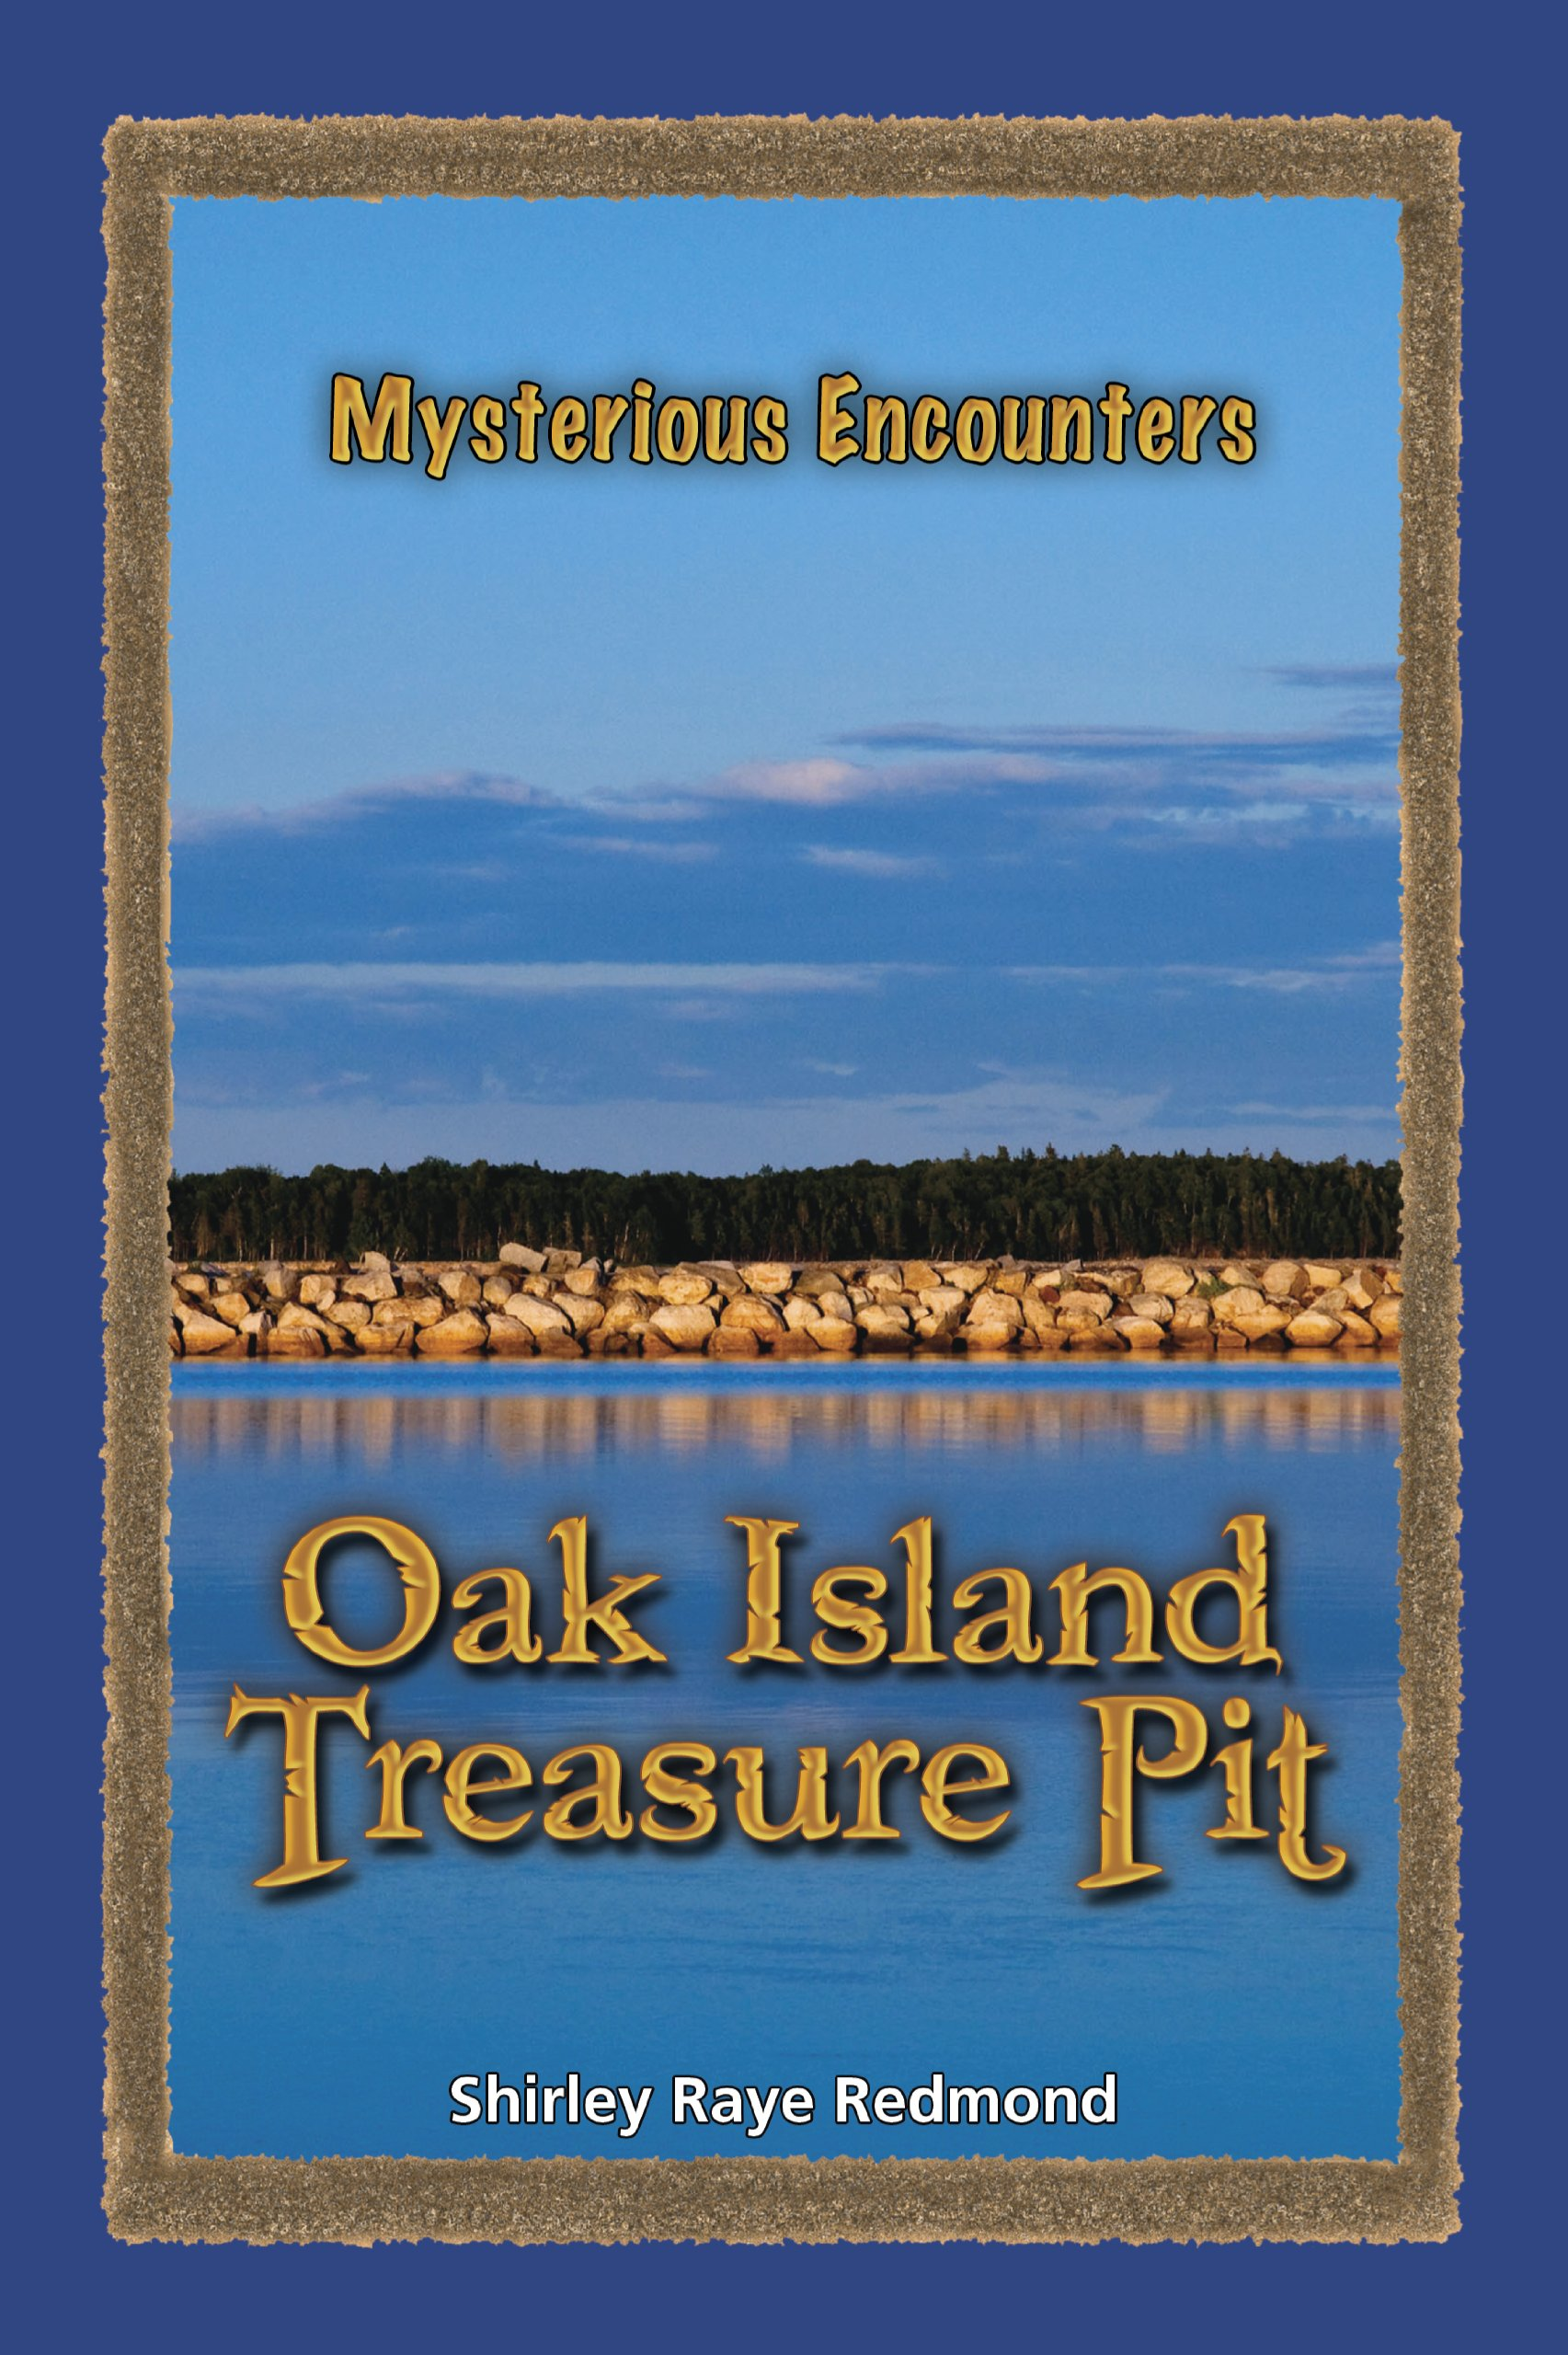 The Oak Island Treasure Pit